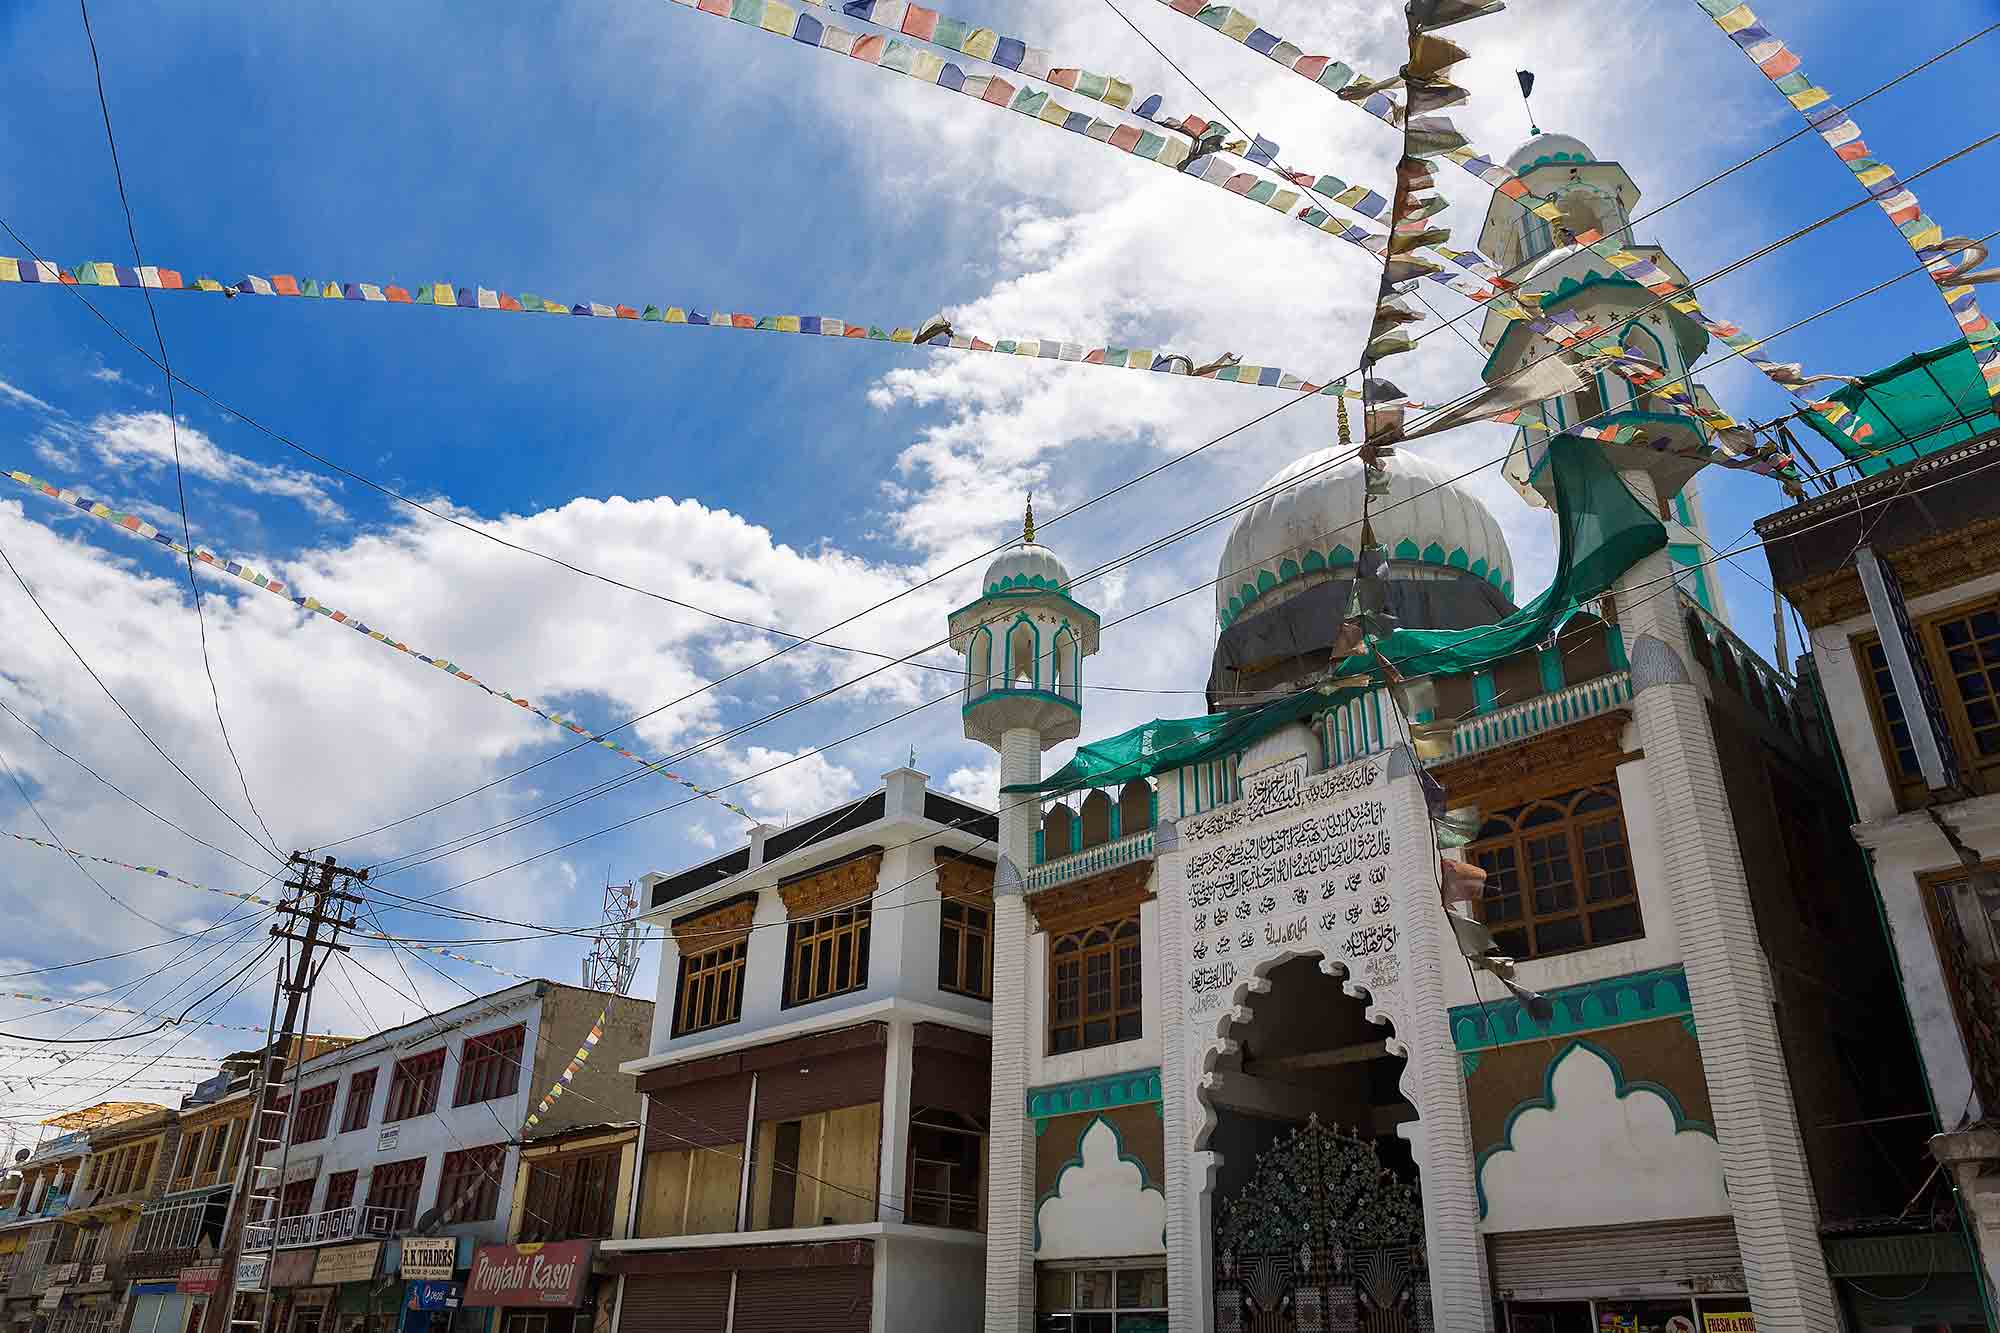 downtown-leh-ladhak-mosque-tibetian-prayer-flags-india